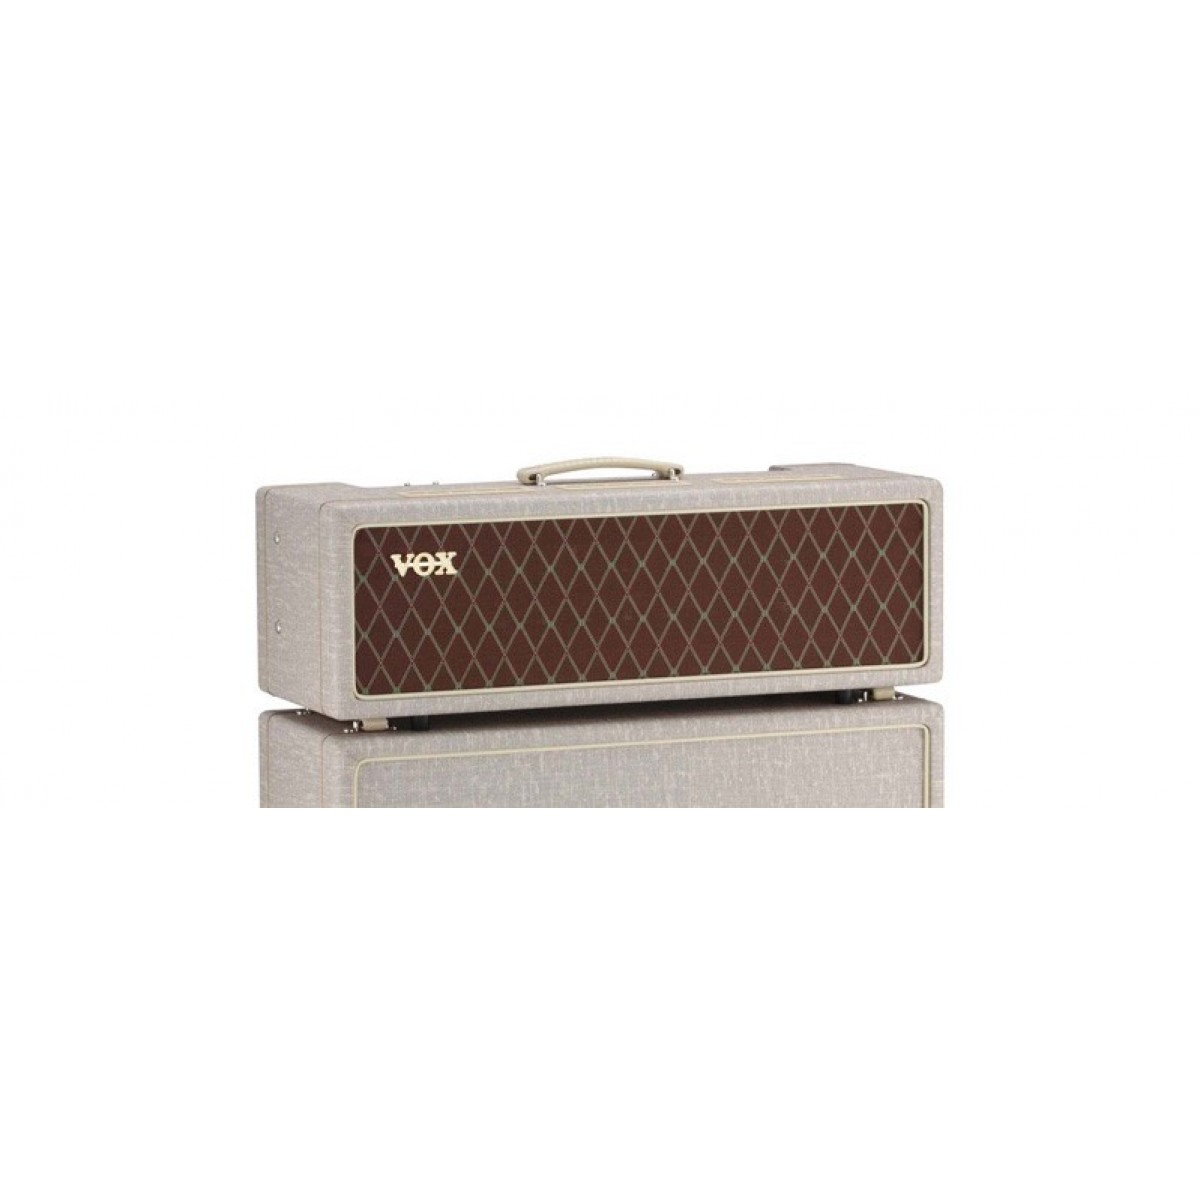 vox ac30 hand wired 30w 2x12 guitar amplifier head. Black Bedroom Furniture Sets. Home Design Ideas